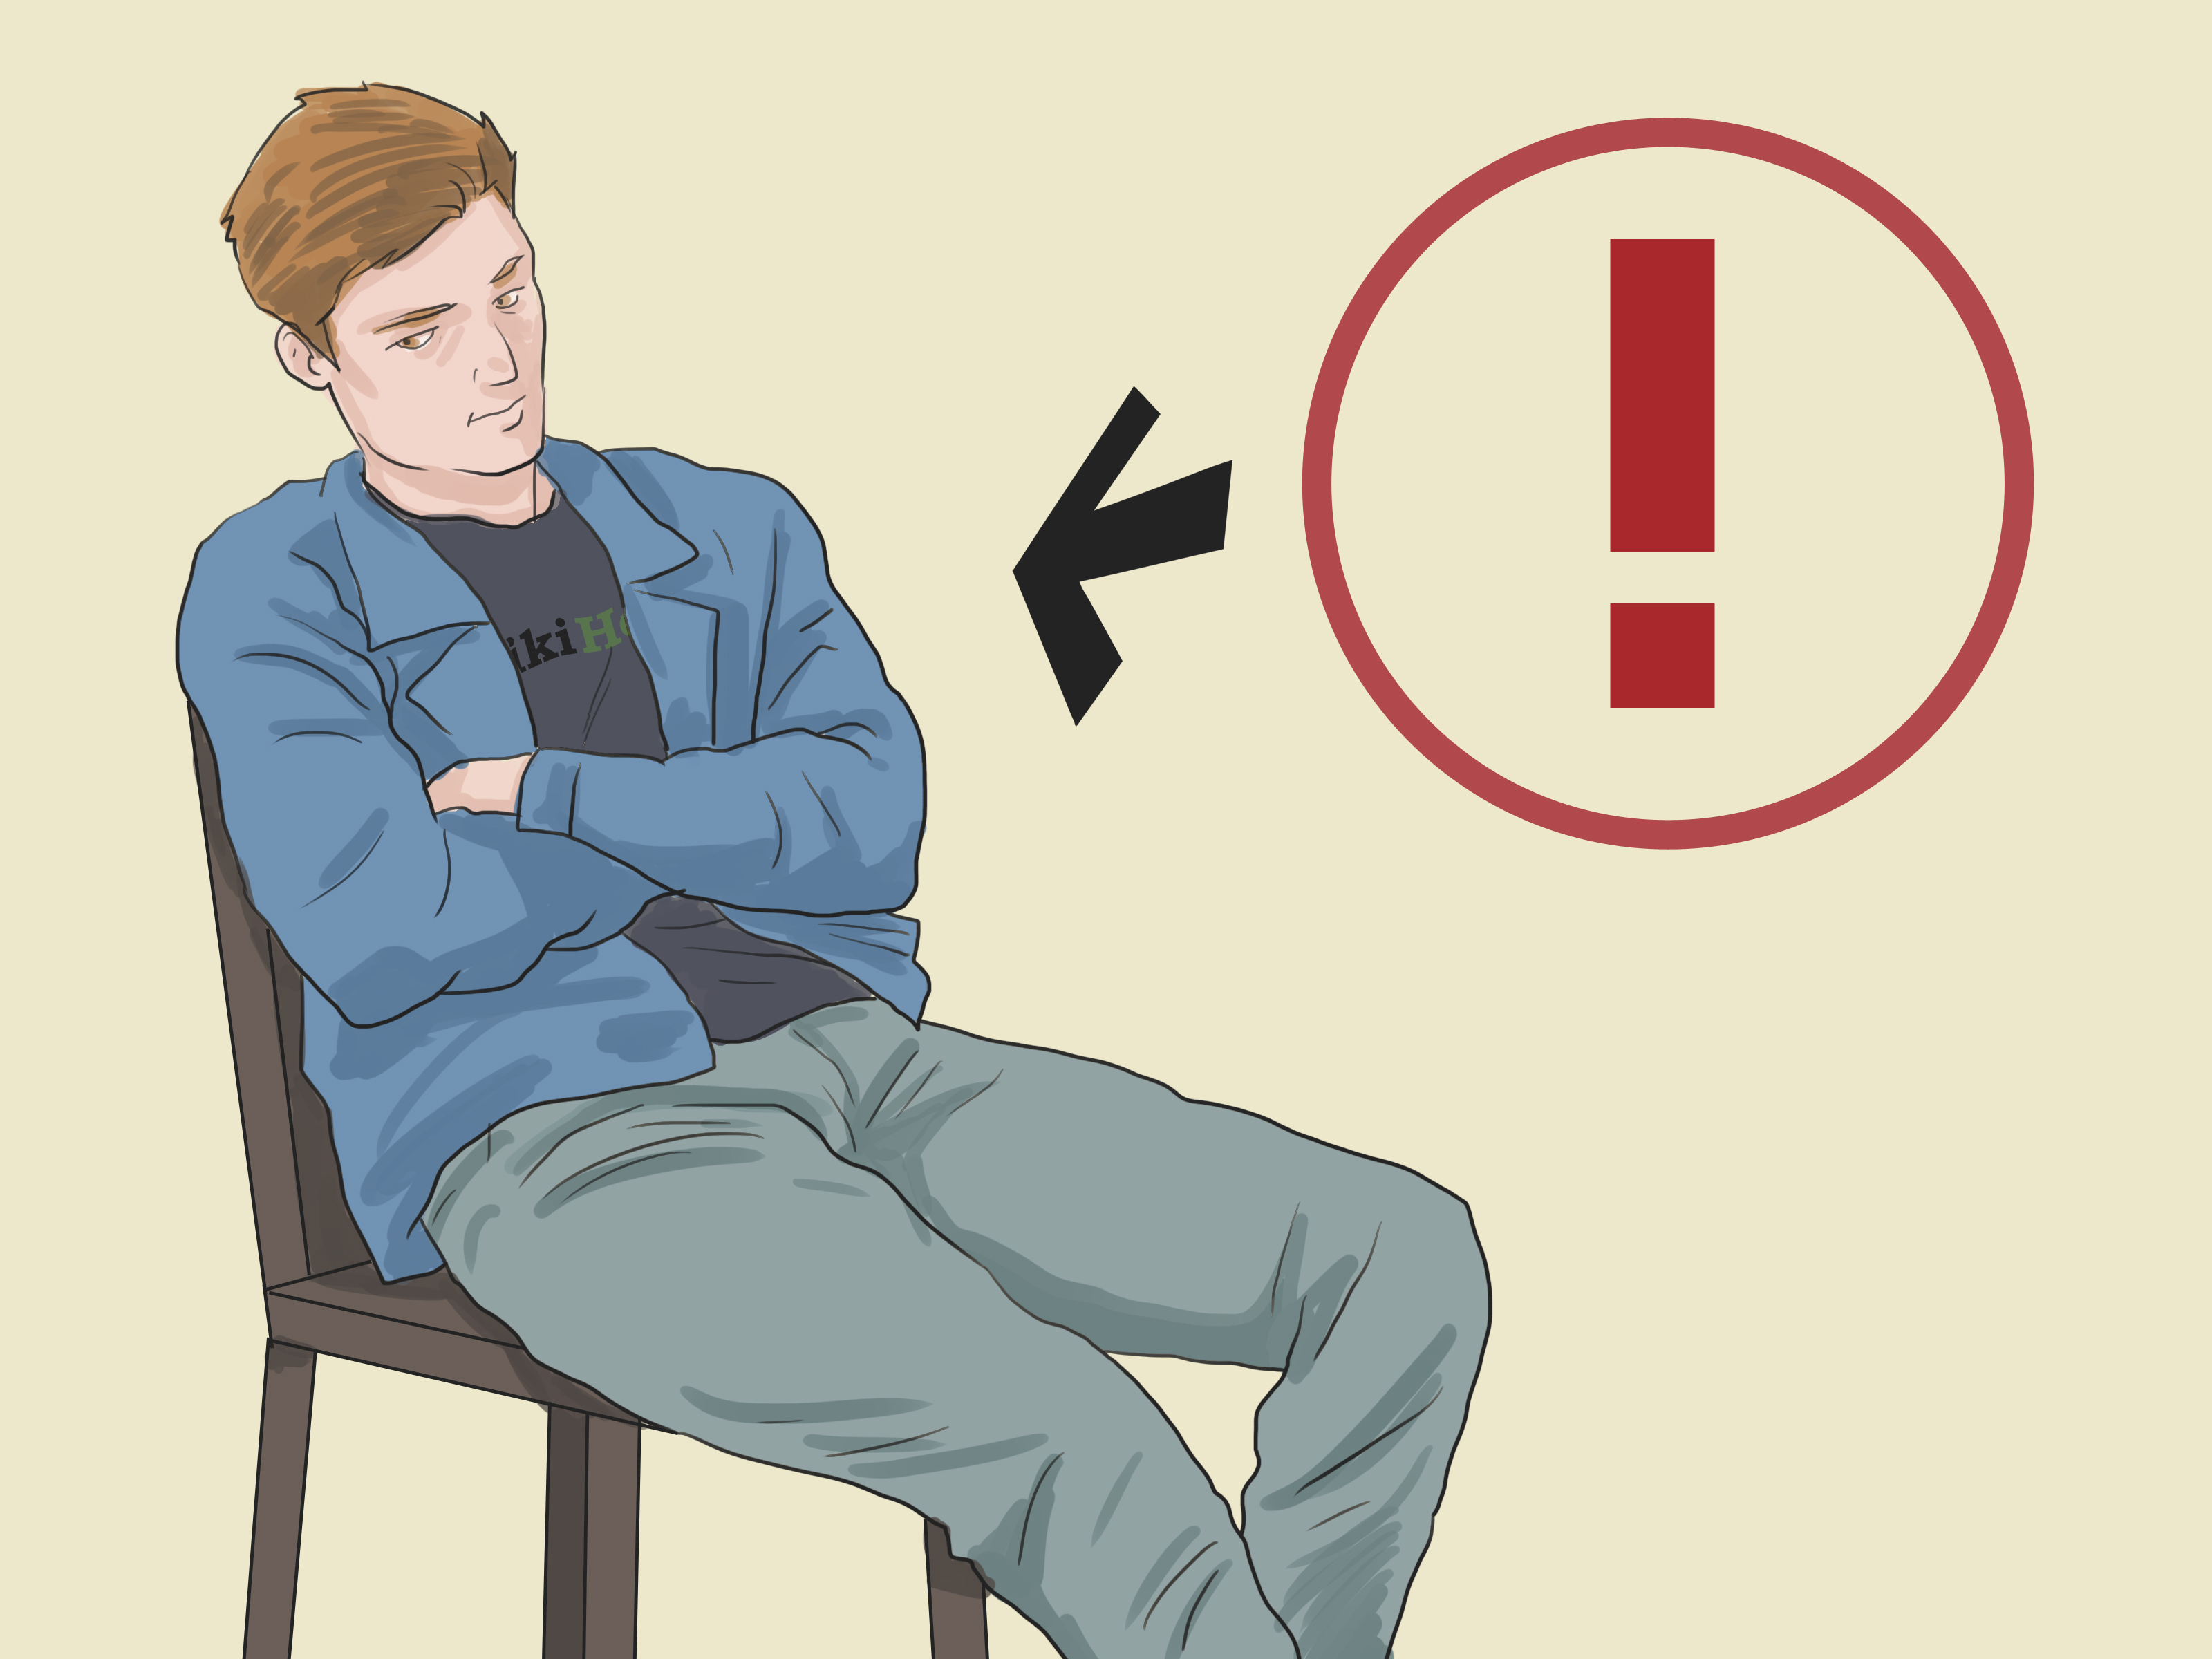 The Best Ways To Communicate With Body Language